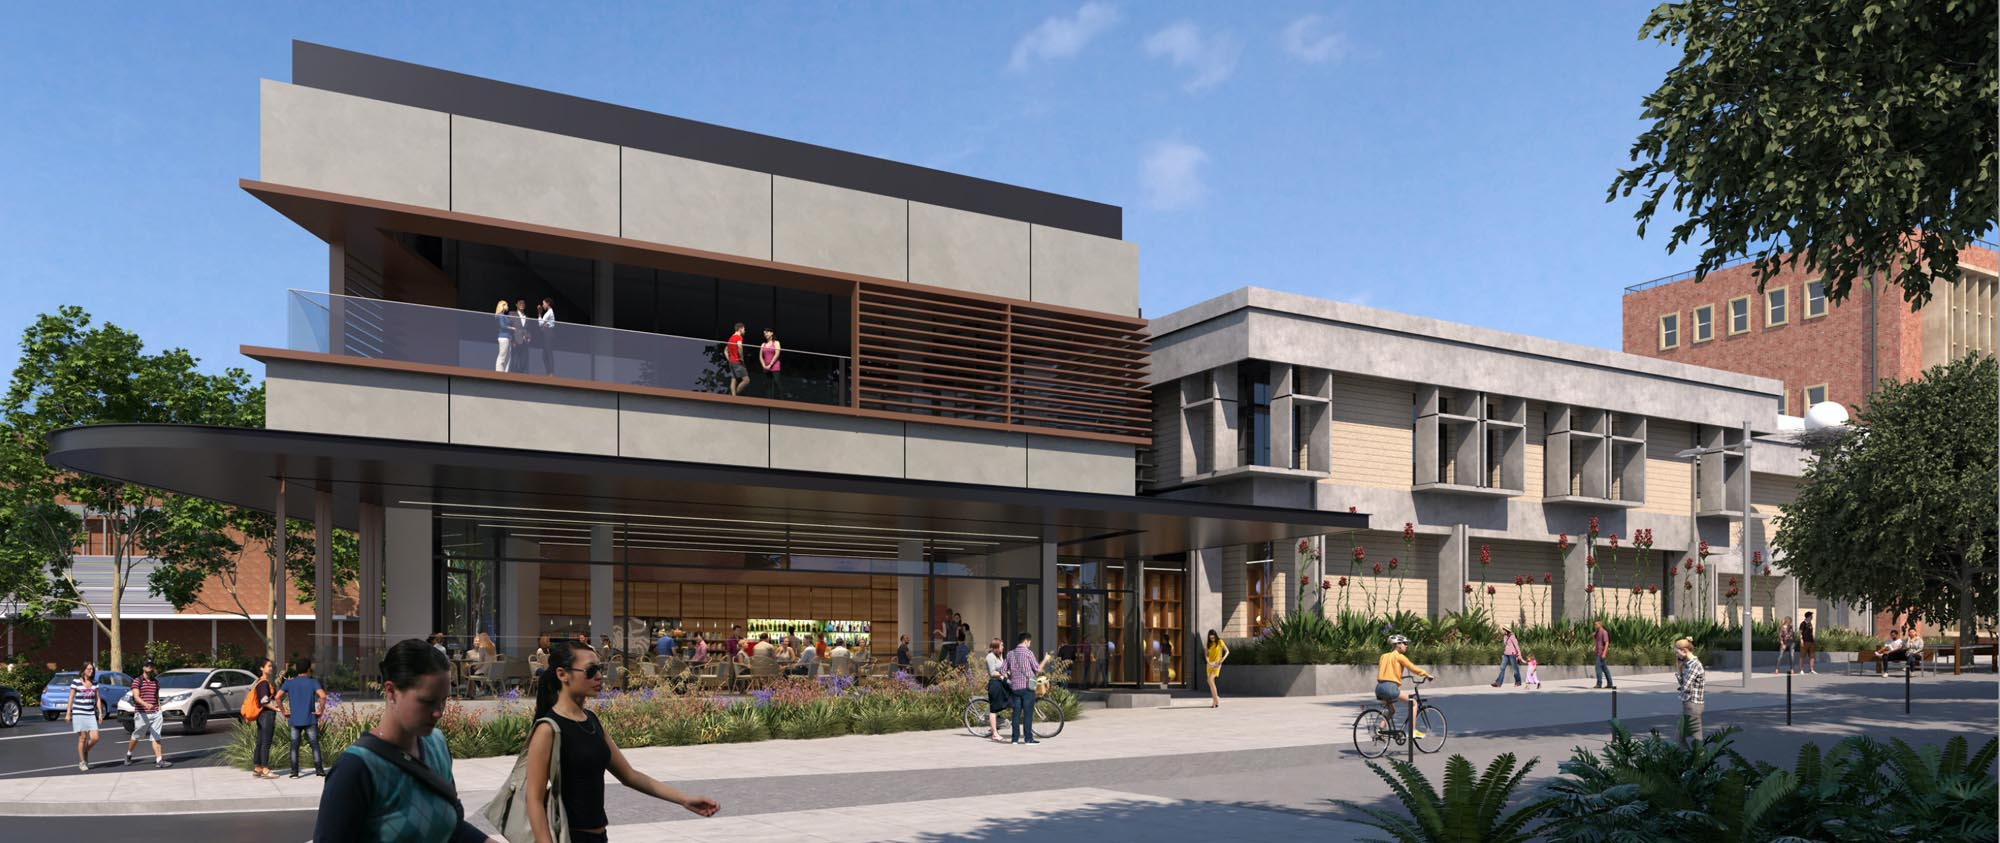 Newcastle art gallery expansion